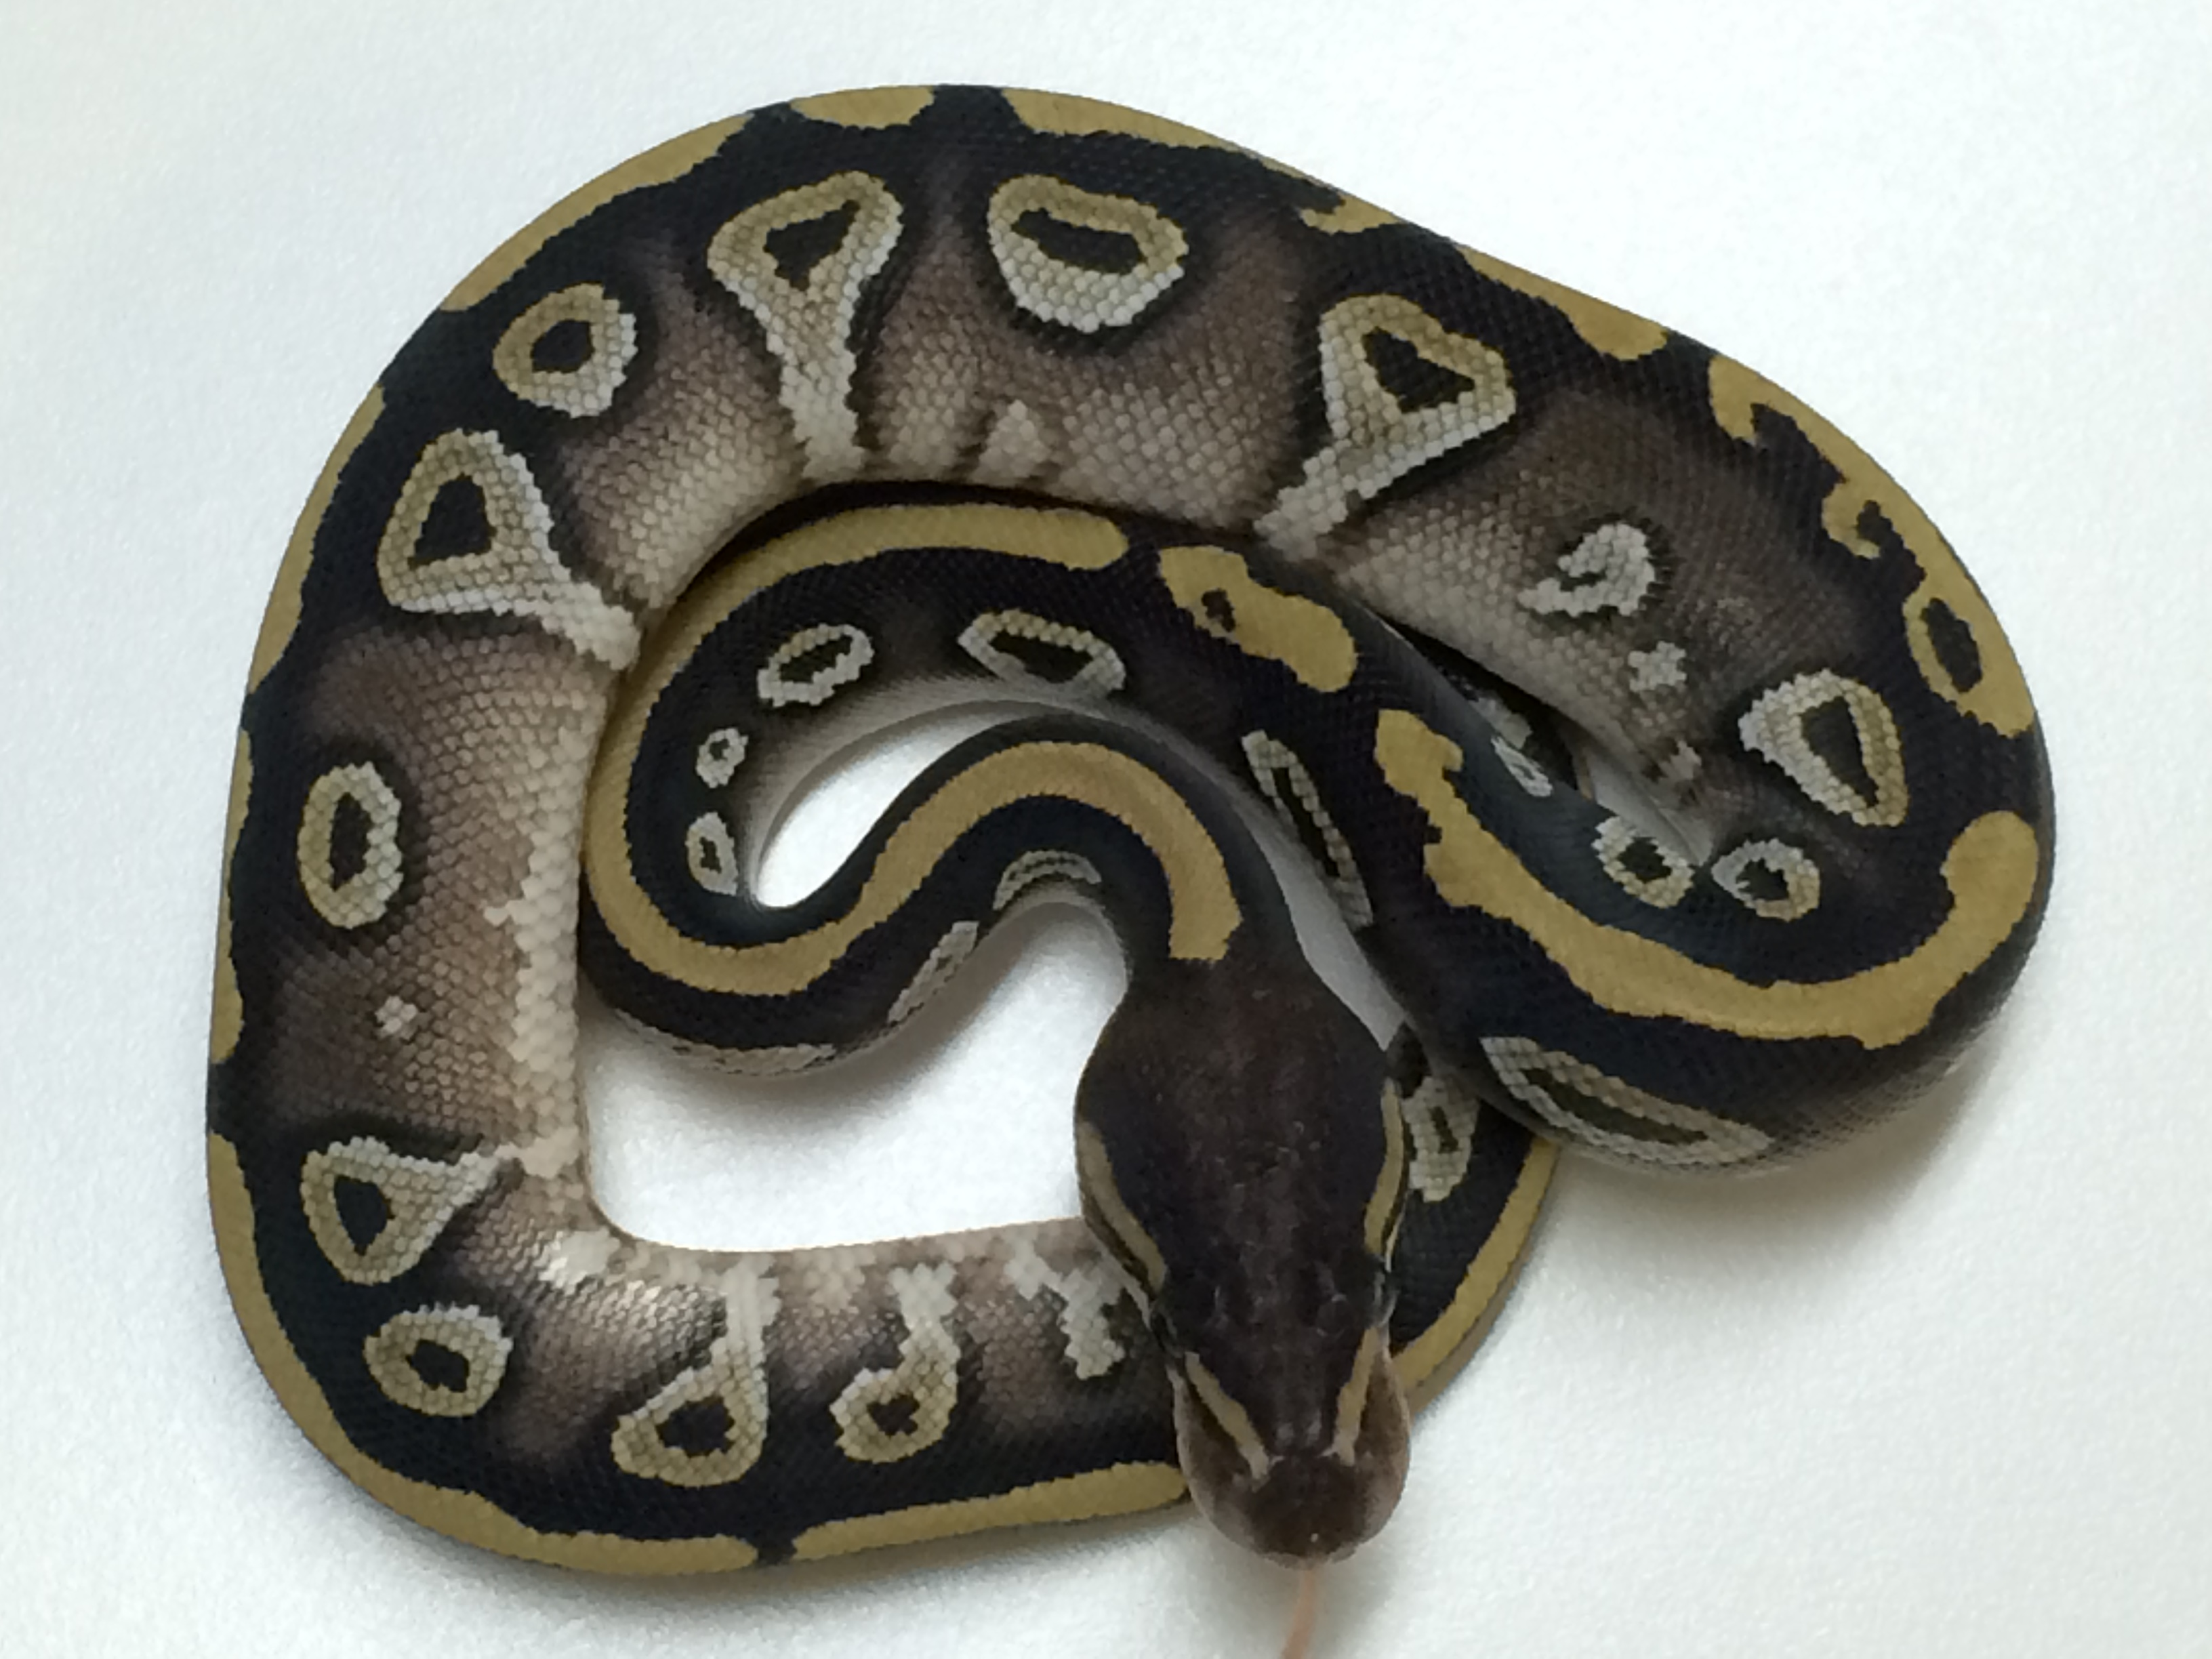 Mojave Ball Python For Sale - xyzReptiles